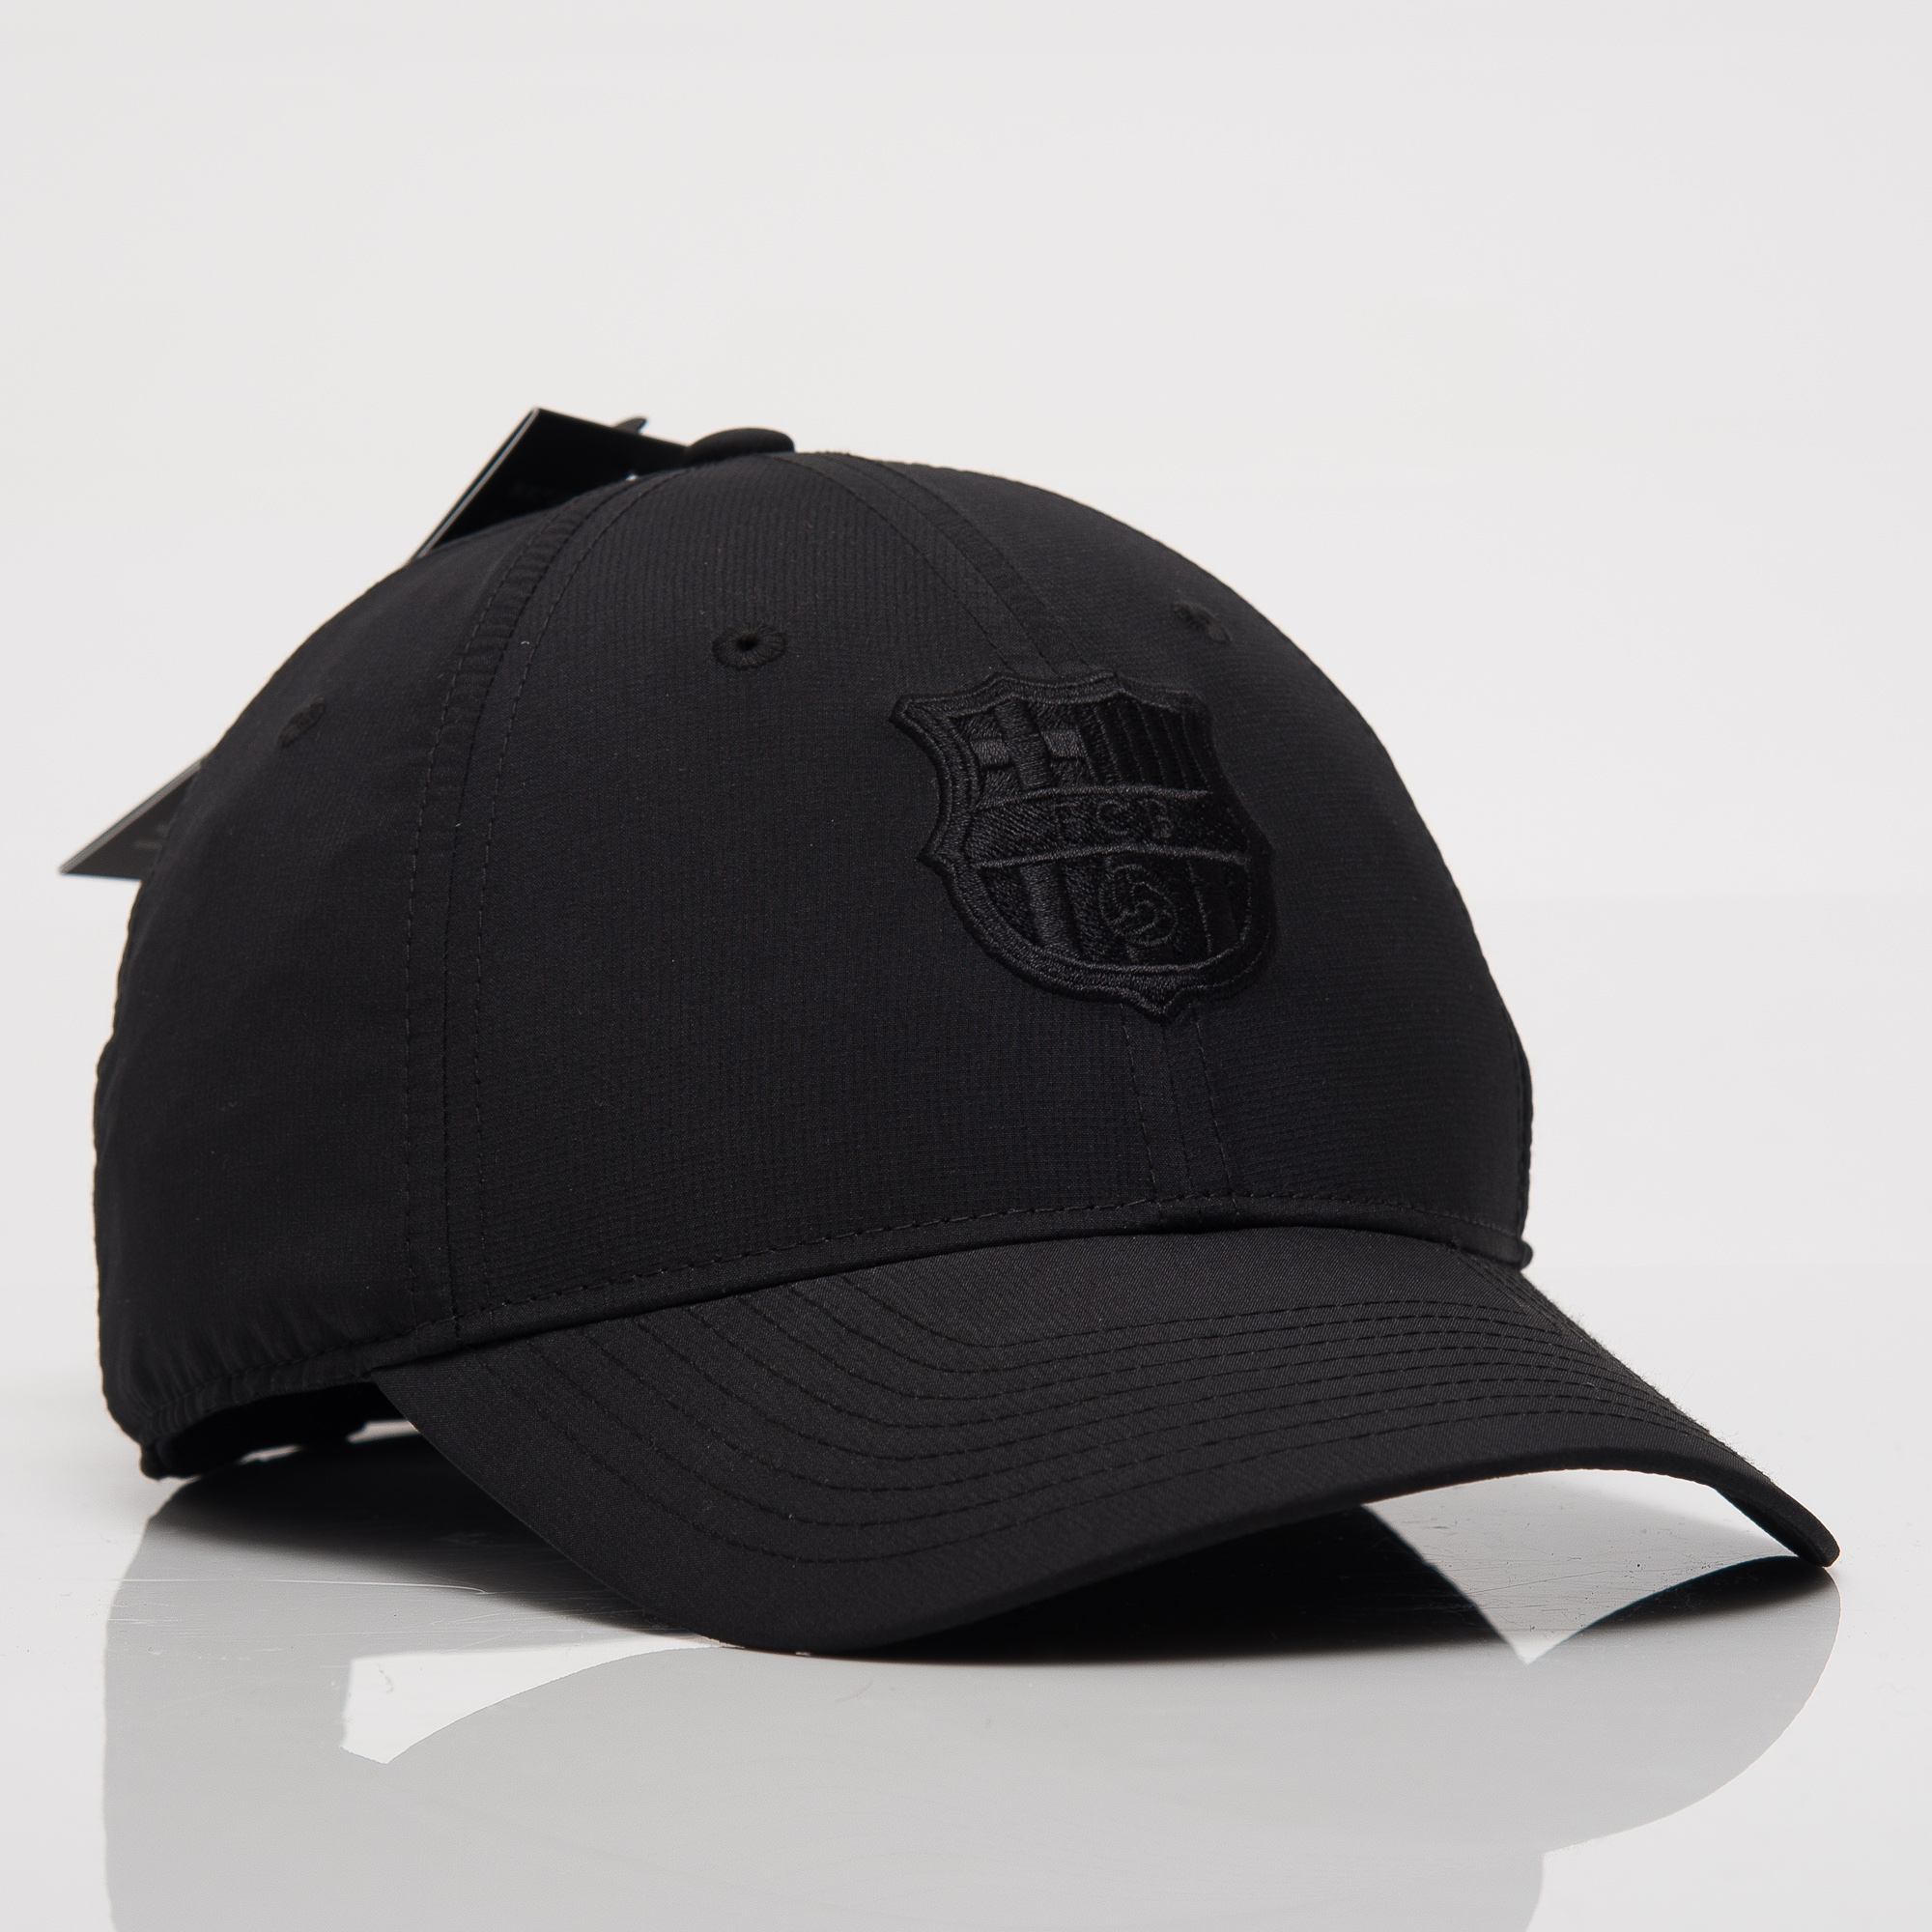 035c19eb560 Nike Dri-FIT FC Barcelona Adjustable Cap - Soccer Shop Barcelona FC  Merchandise - Superfanas.lt